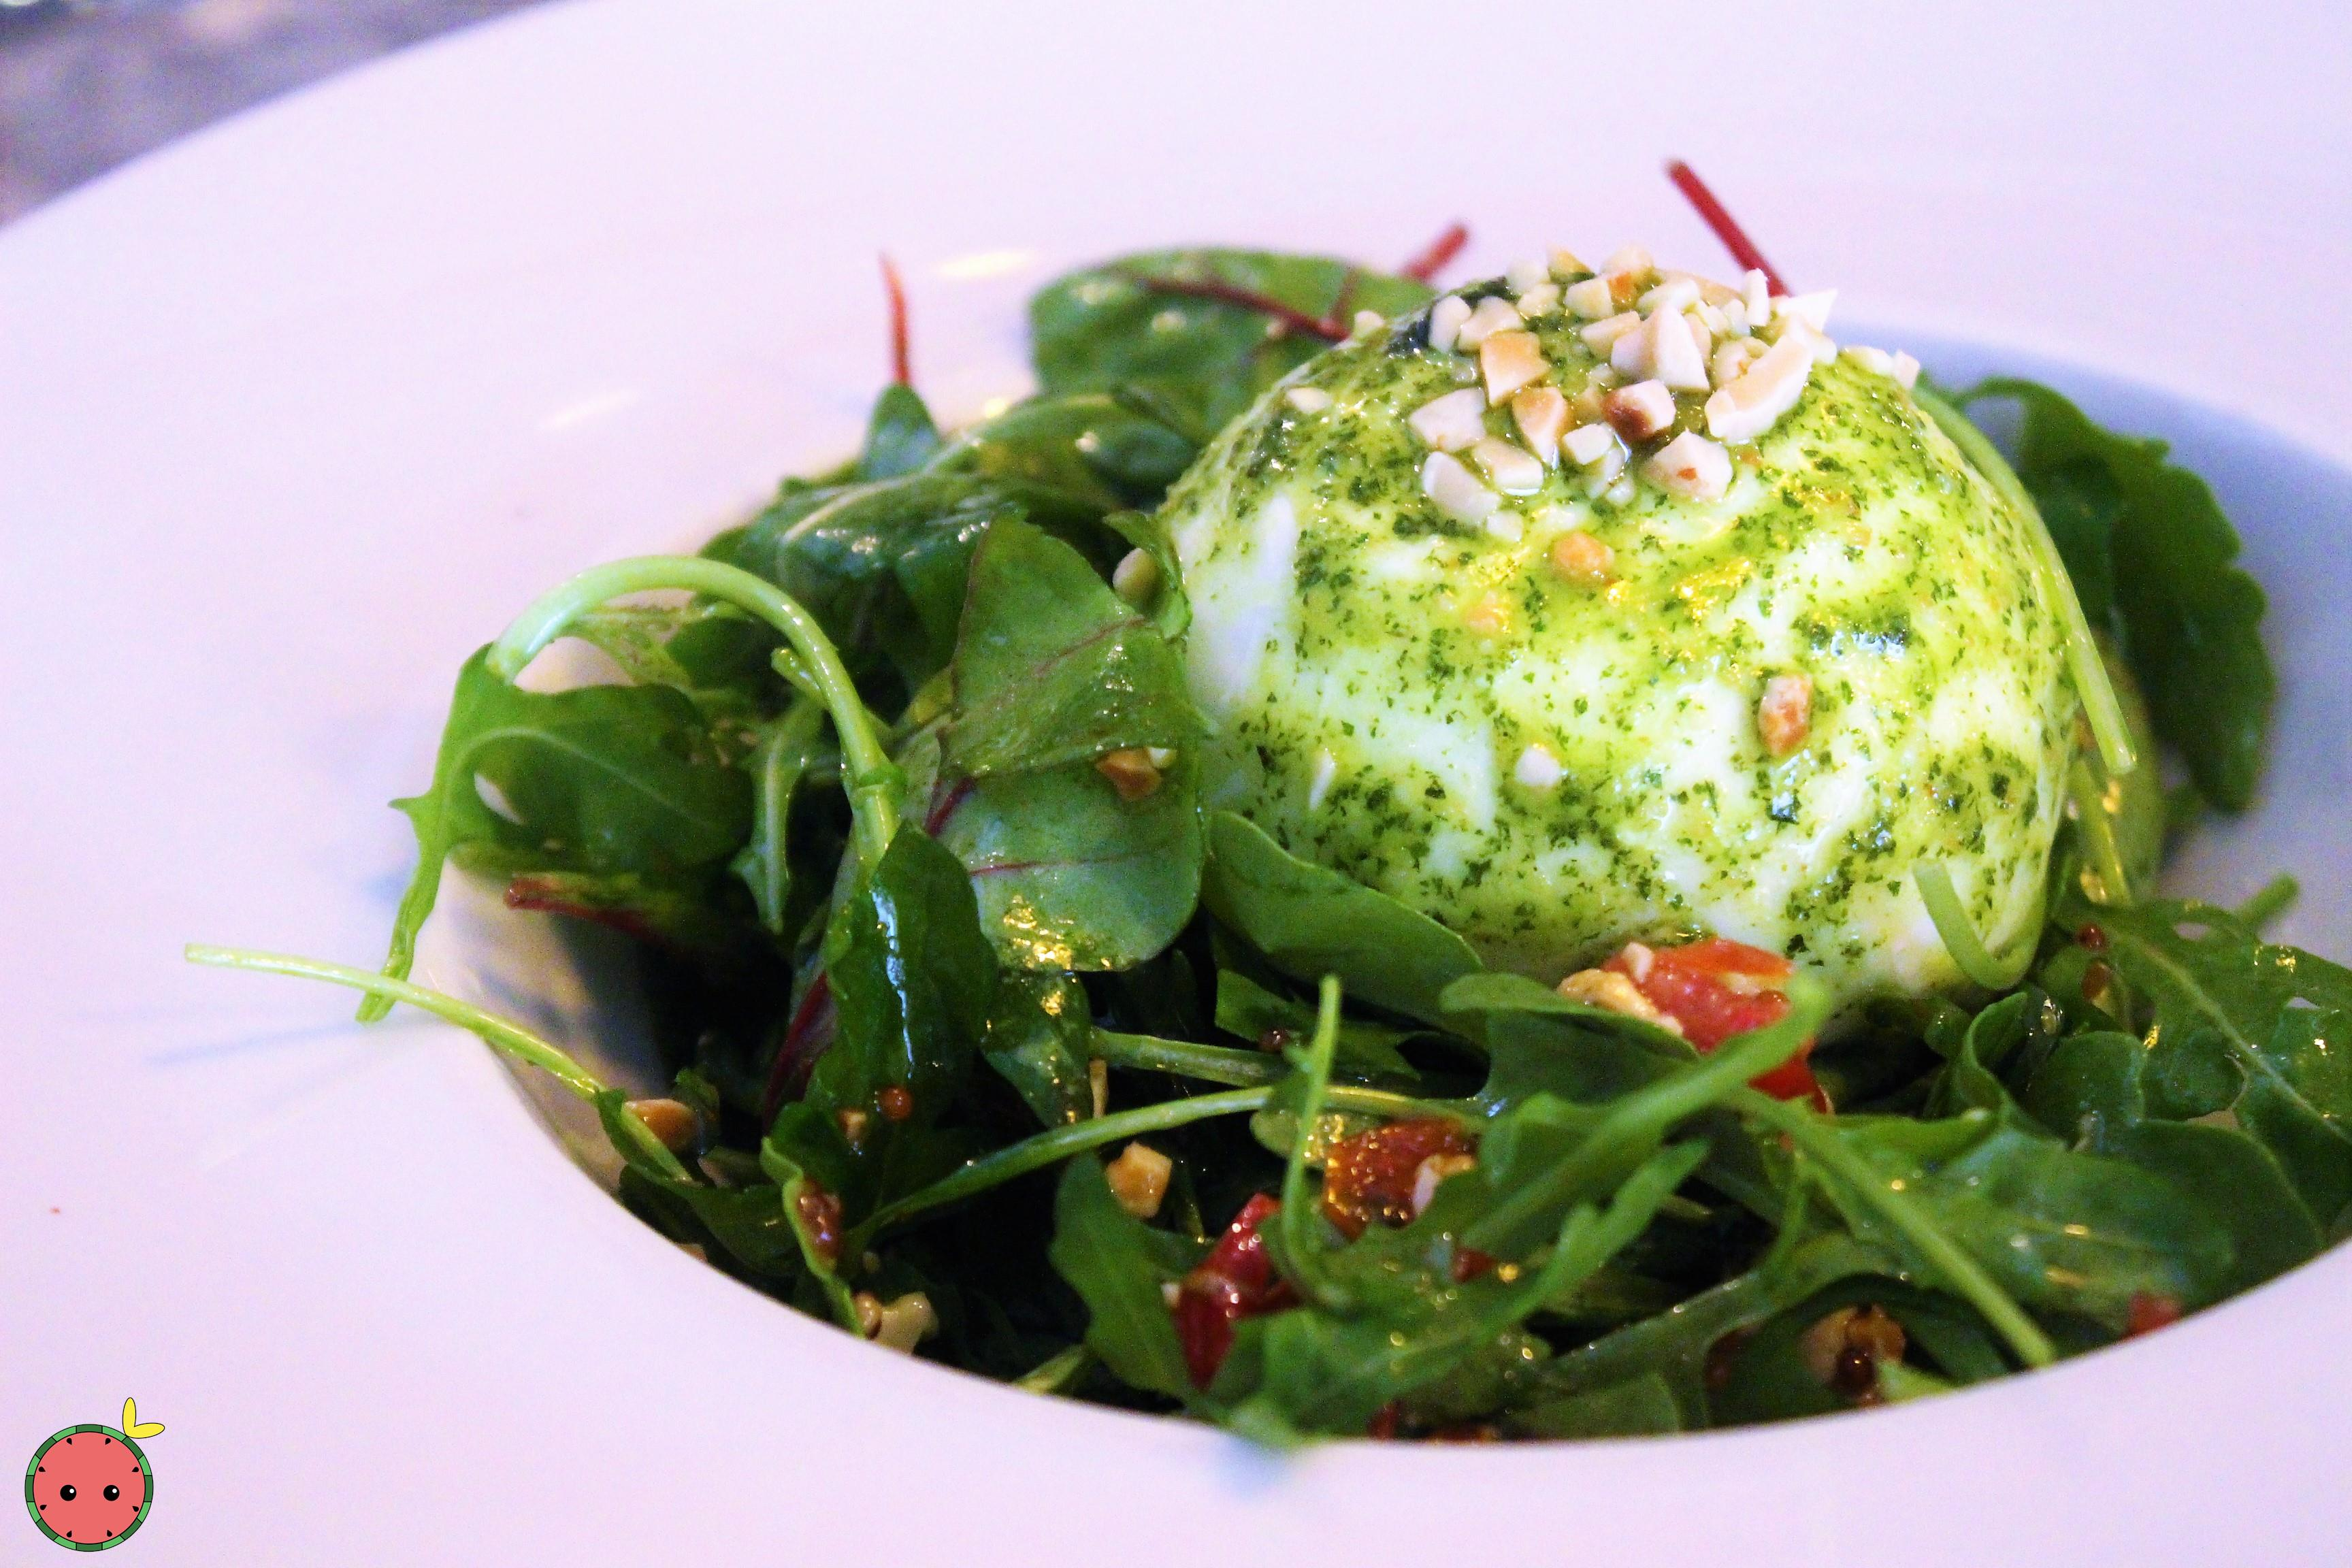 Buffalo Burrata, rocket salad (arugala), sun-dried tomatoes and nuts with basil pesto